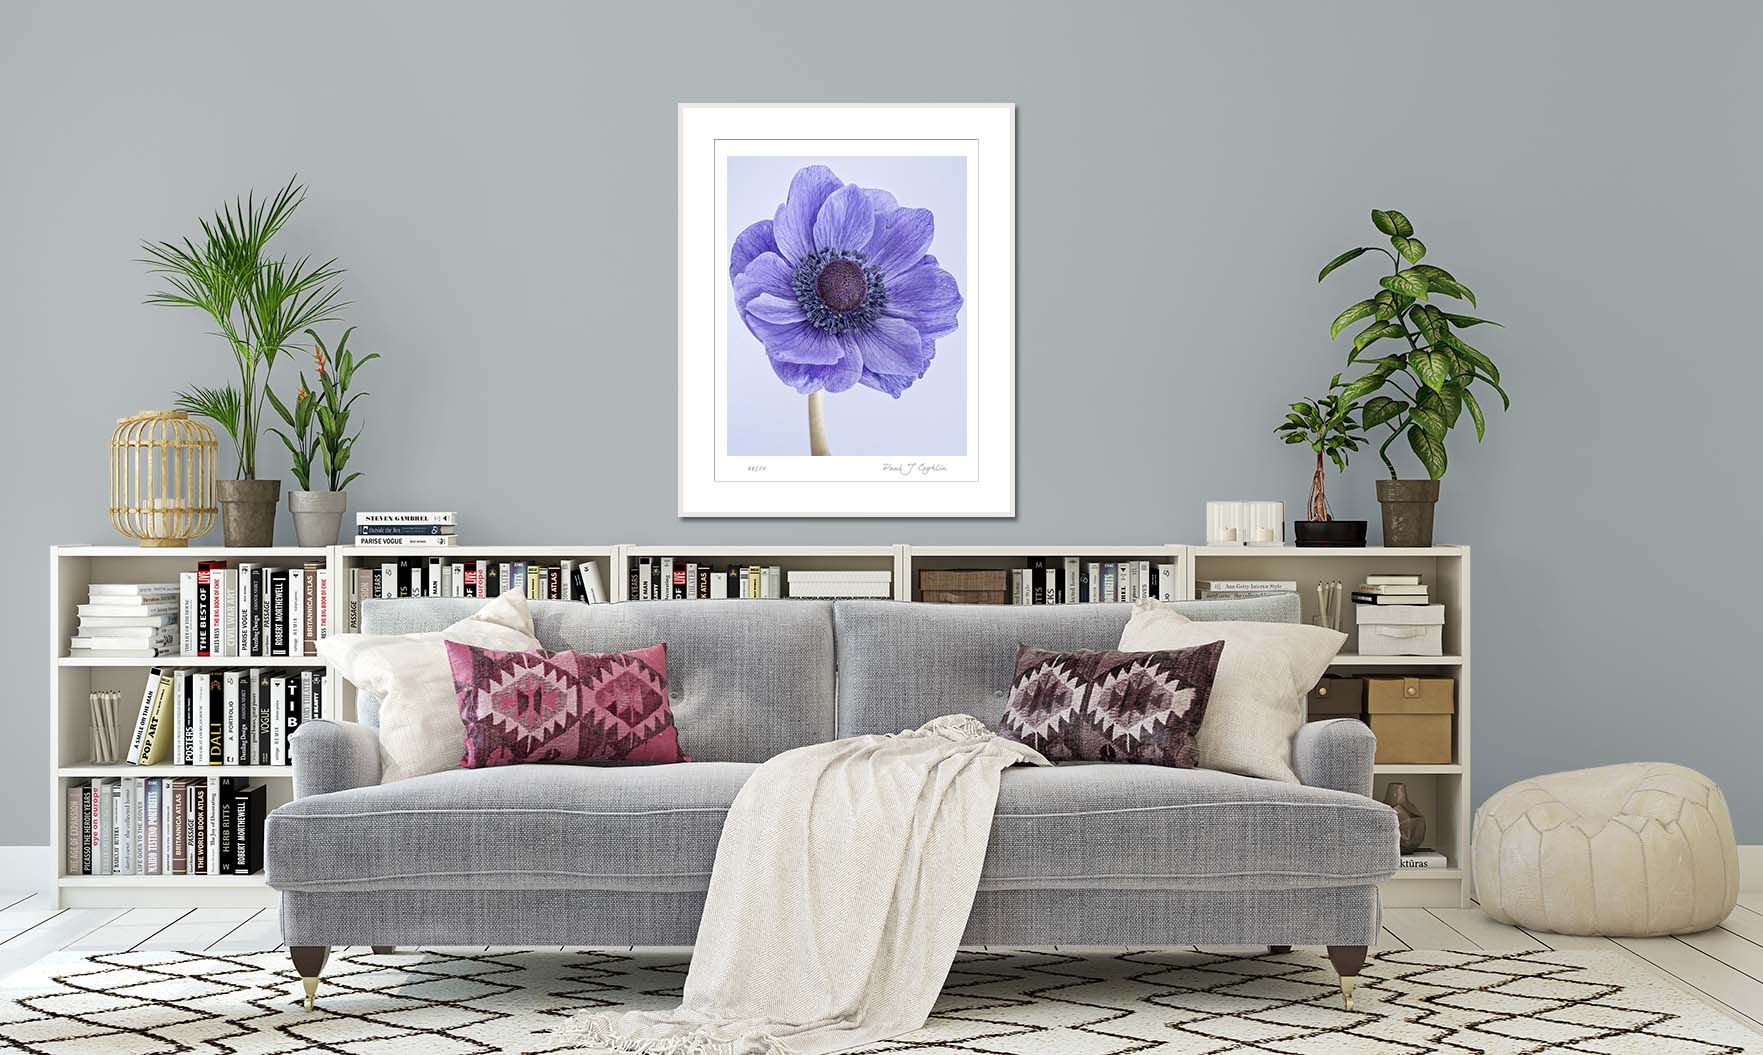 Blue anemone on a pale blue background. Limited edition botanical print by fine art photographer Paul Coghlin